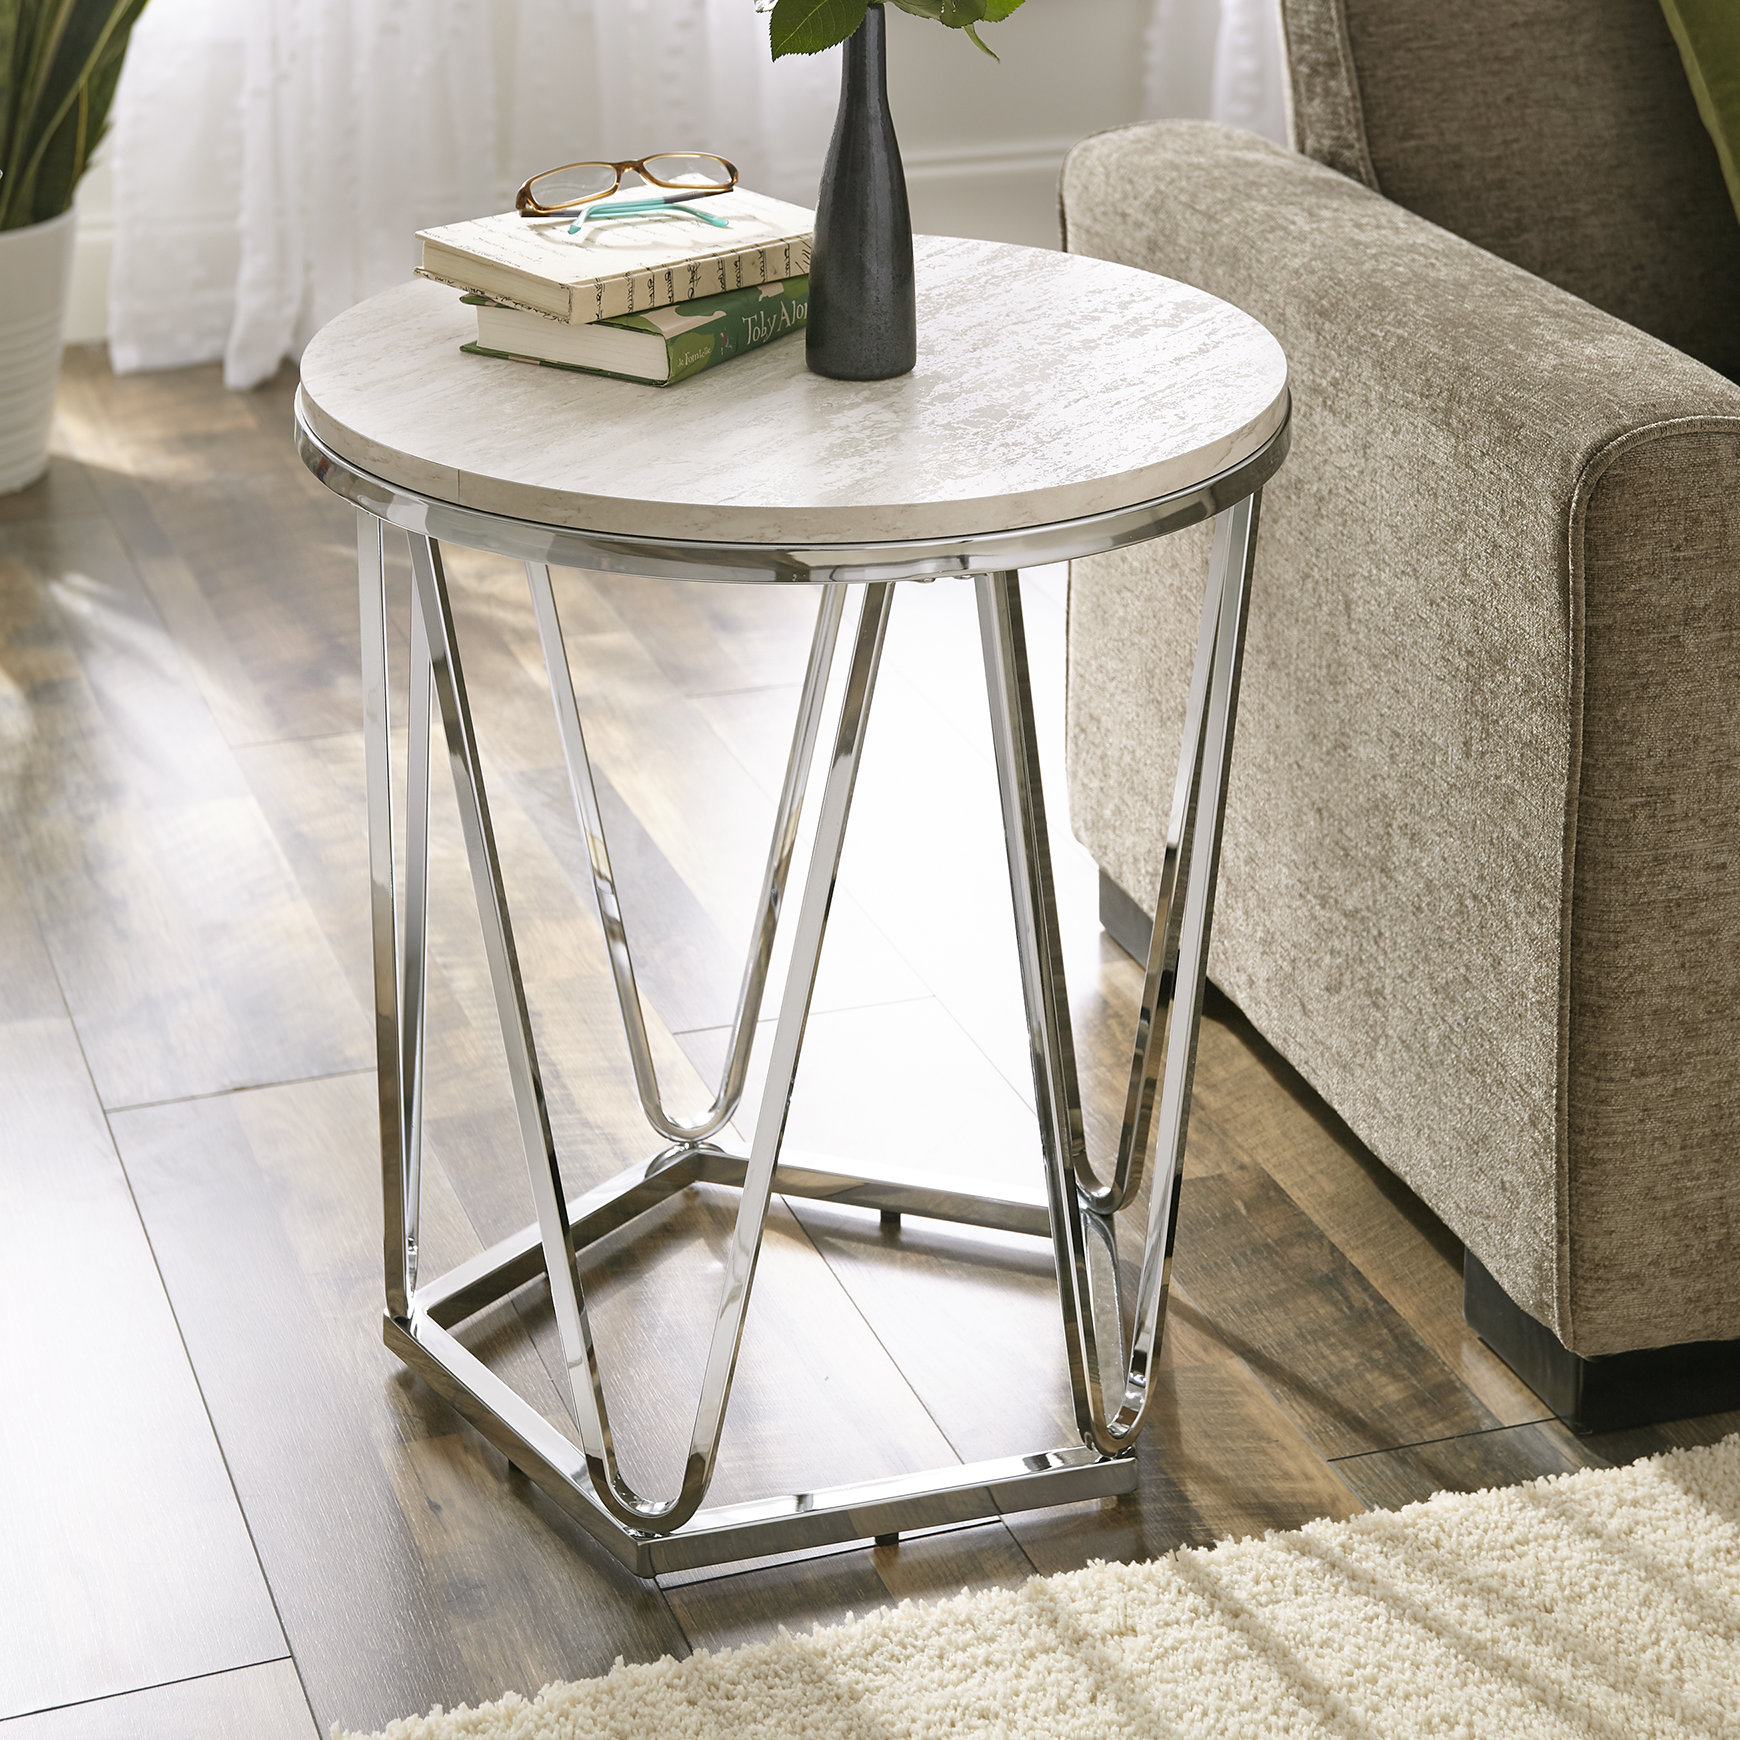 faux stone end table quartz room essentials trestle accent quickview bathroom caddy ikea living furniture colorful side narrow wall black outdoor setting cover flip top box